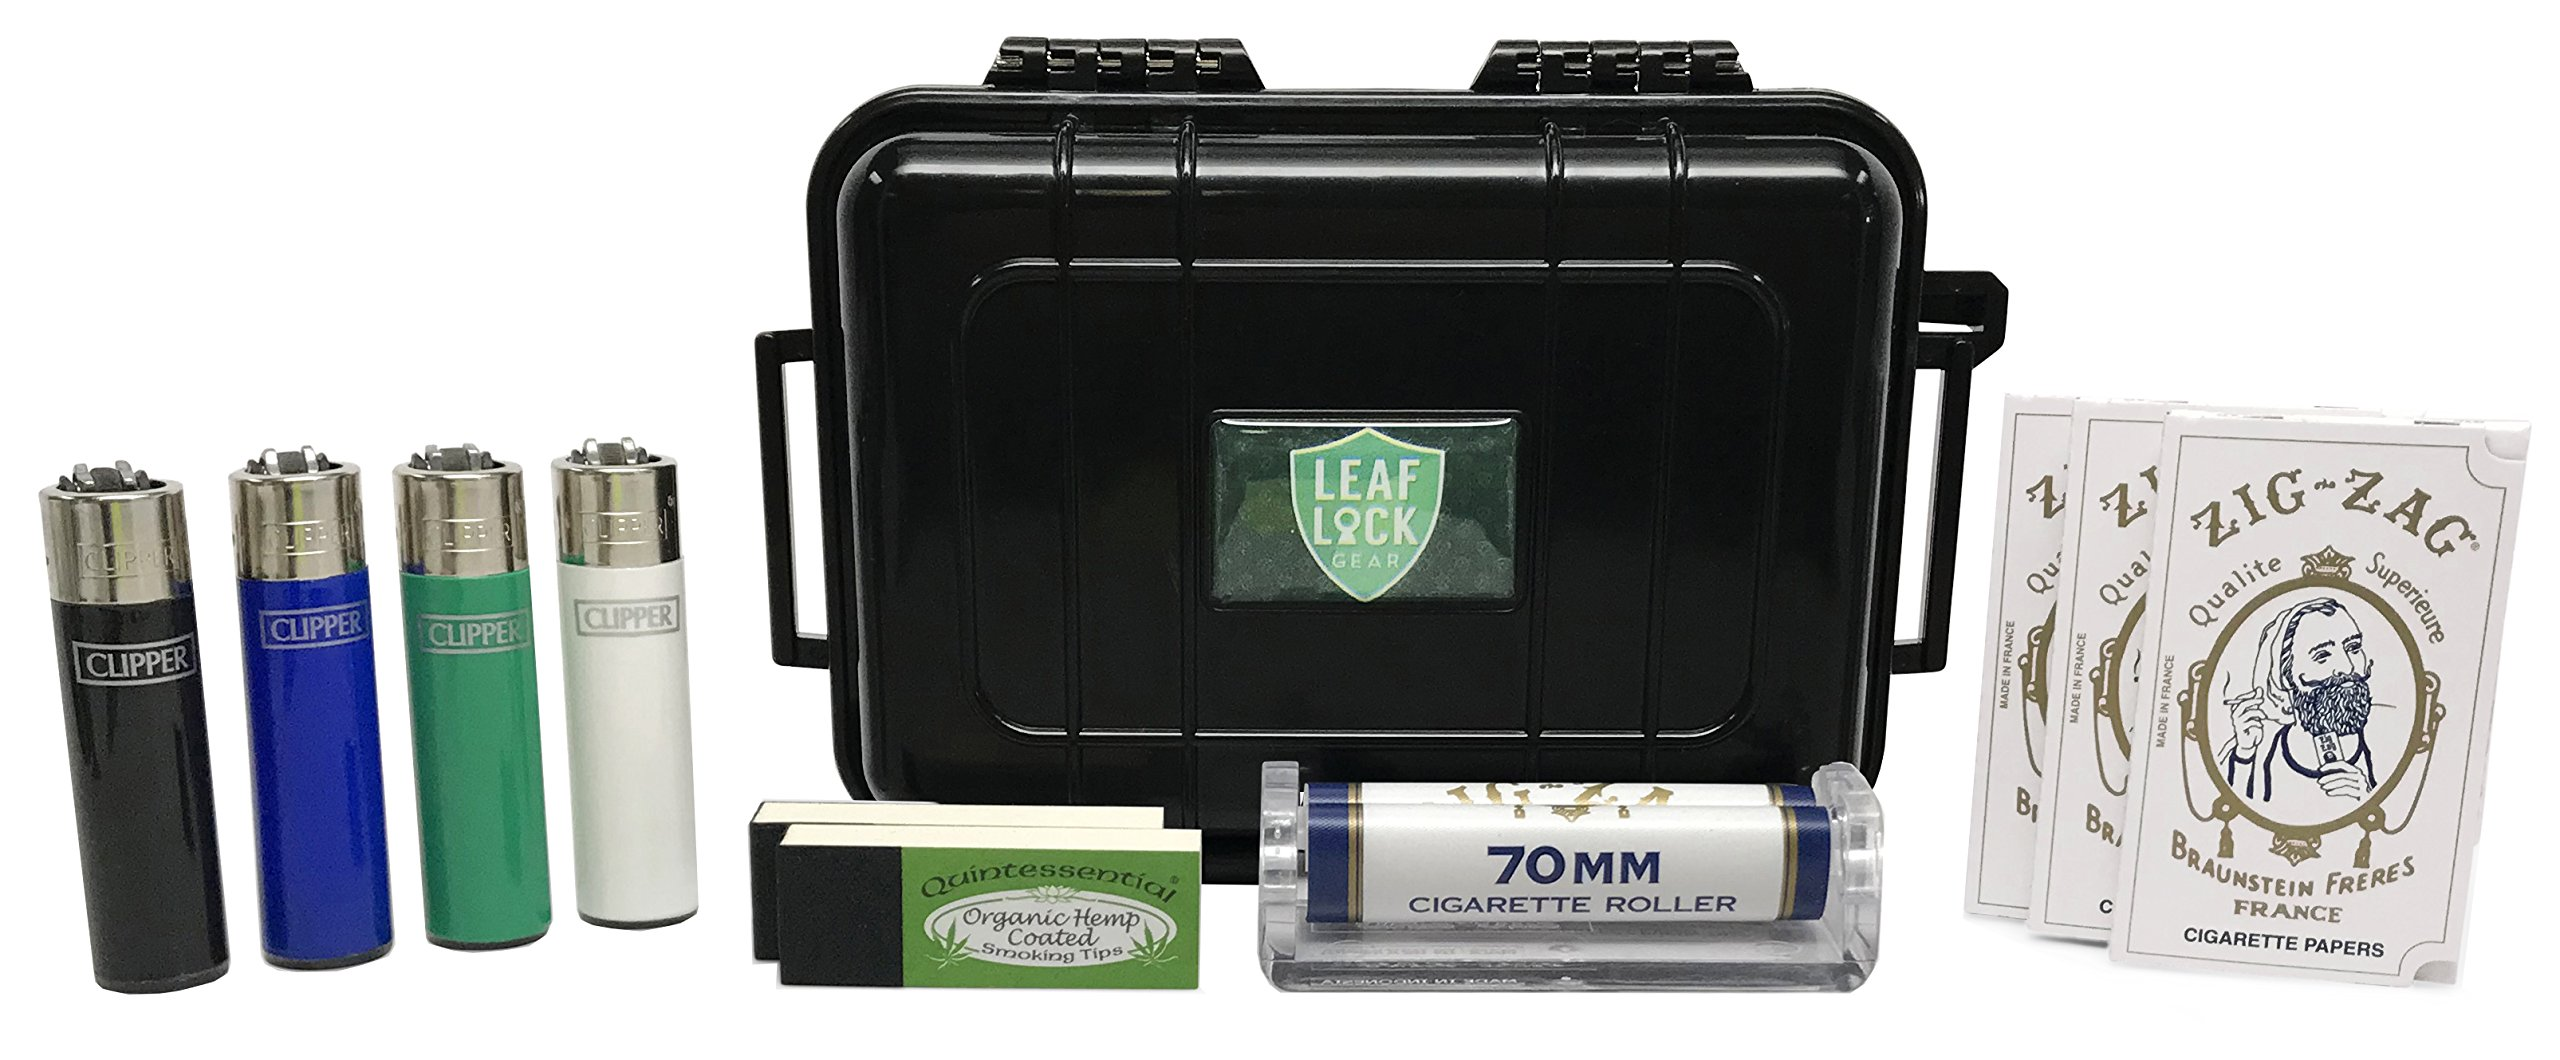 Zig Zag White Rolling Papers (3 Pack), Zig Zag 70mm Roller, Quintessential Rolling Tips (2 Pack), Leaf Lock Gear Travel Case, with Short Solid Color Clipper Lighers - 11 Item Bundle by Zig Zag, Leaf Lock Gear (Image #1)